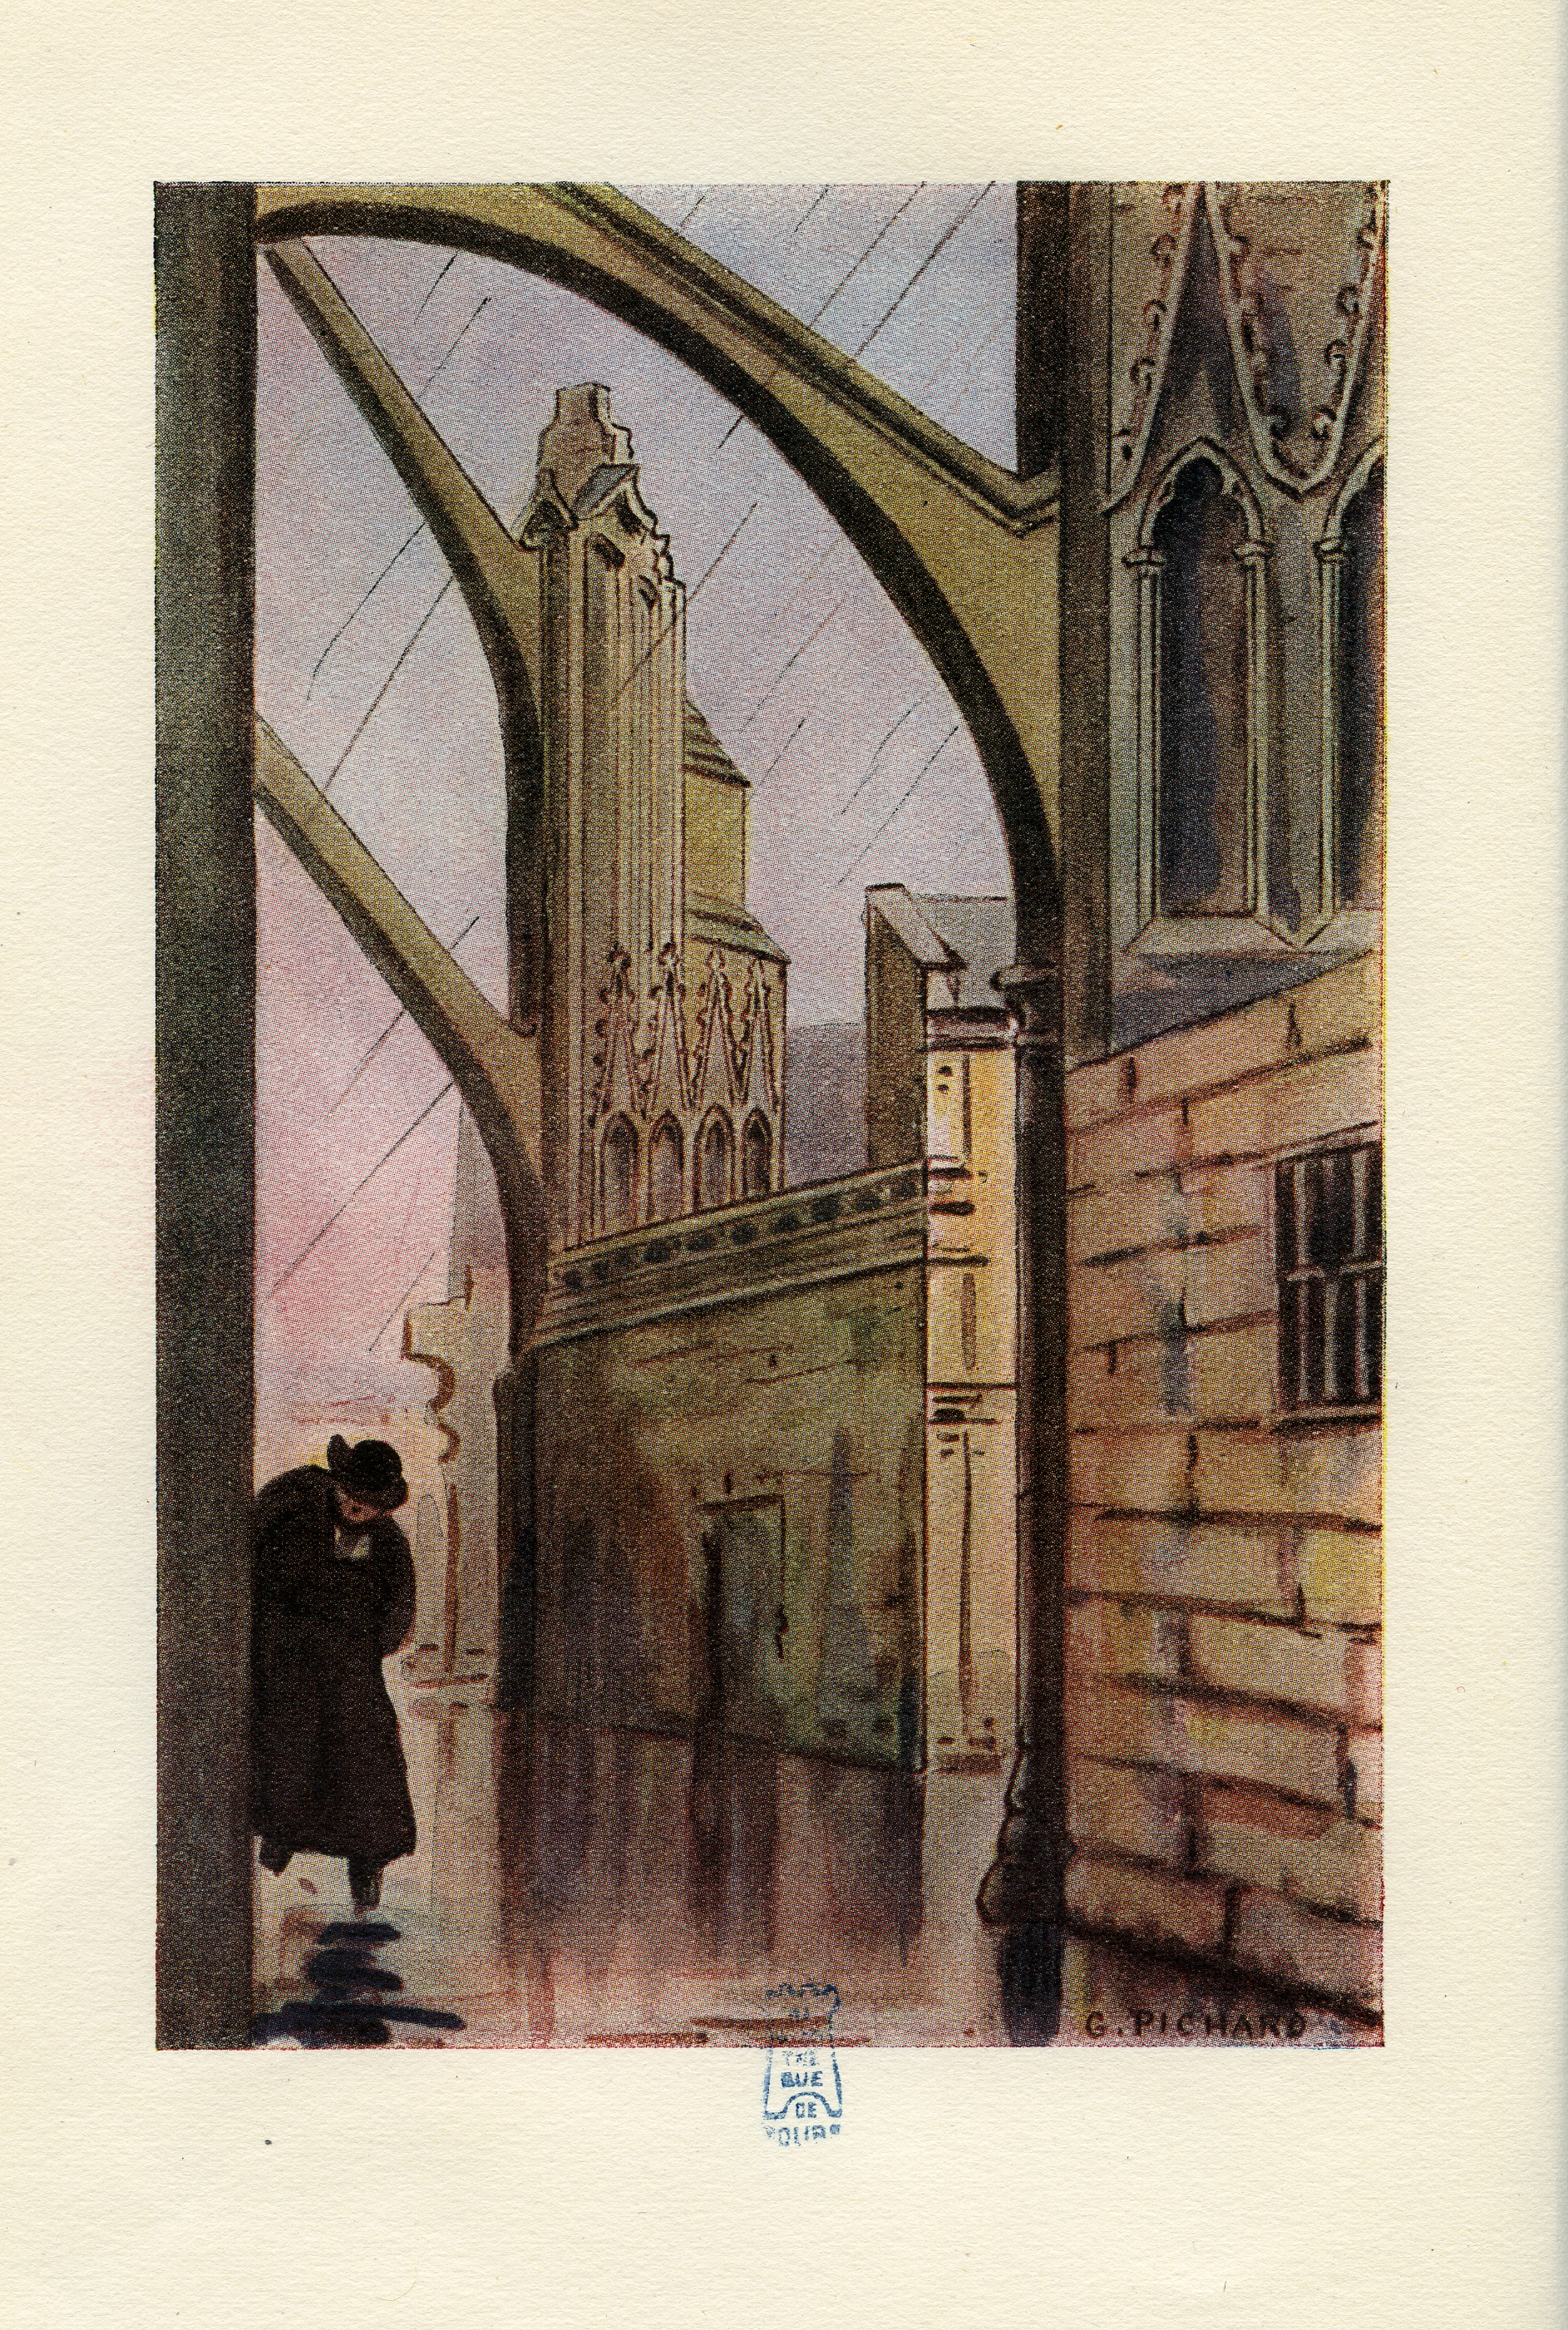 Le Curé de Tours, 1947, illustration de Georges Pichard